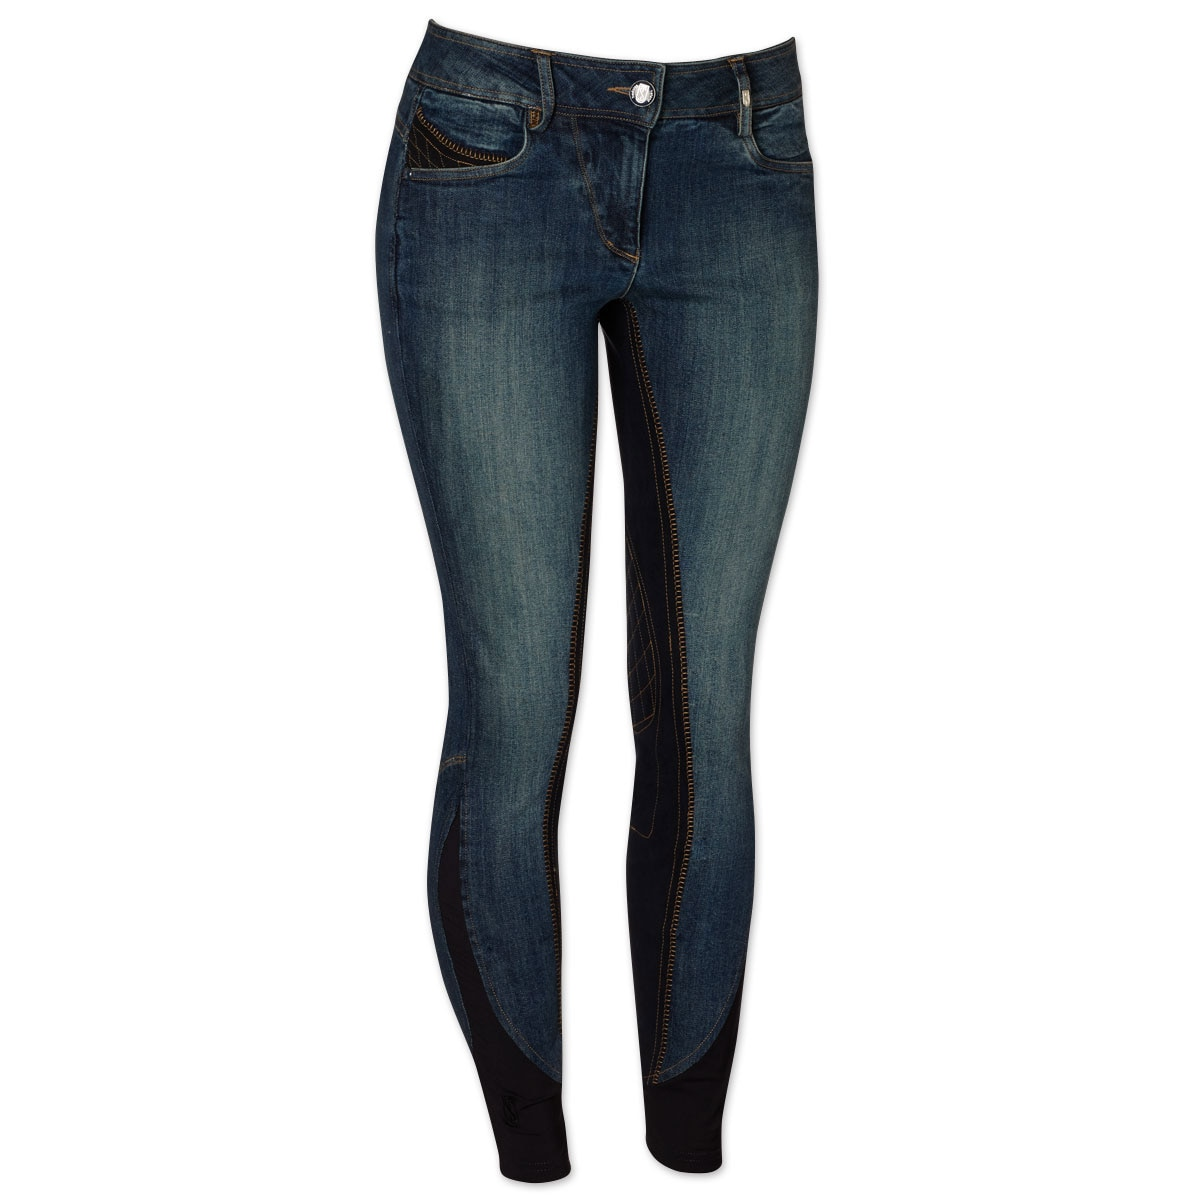 Tredstep Denim Full Seat Breech